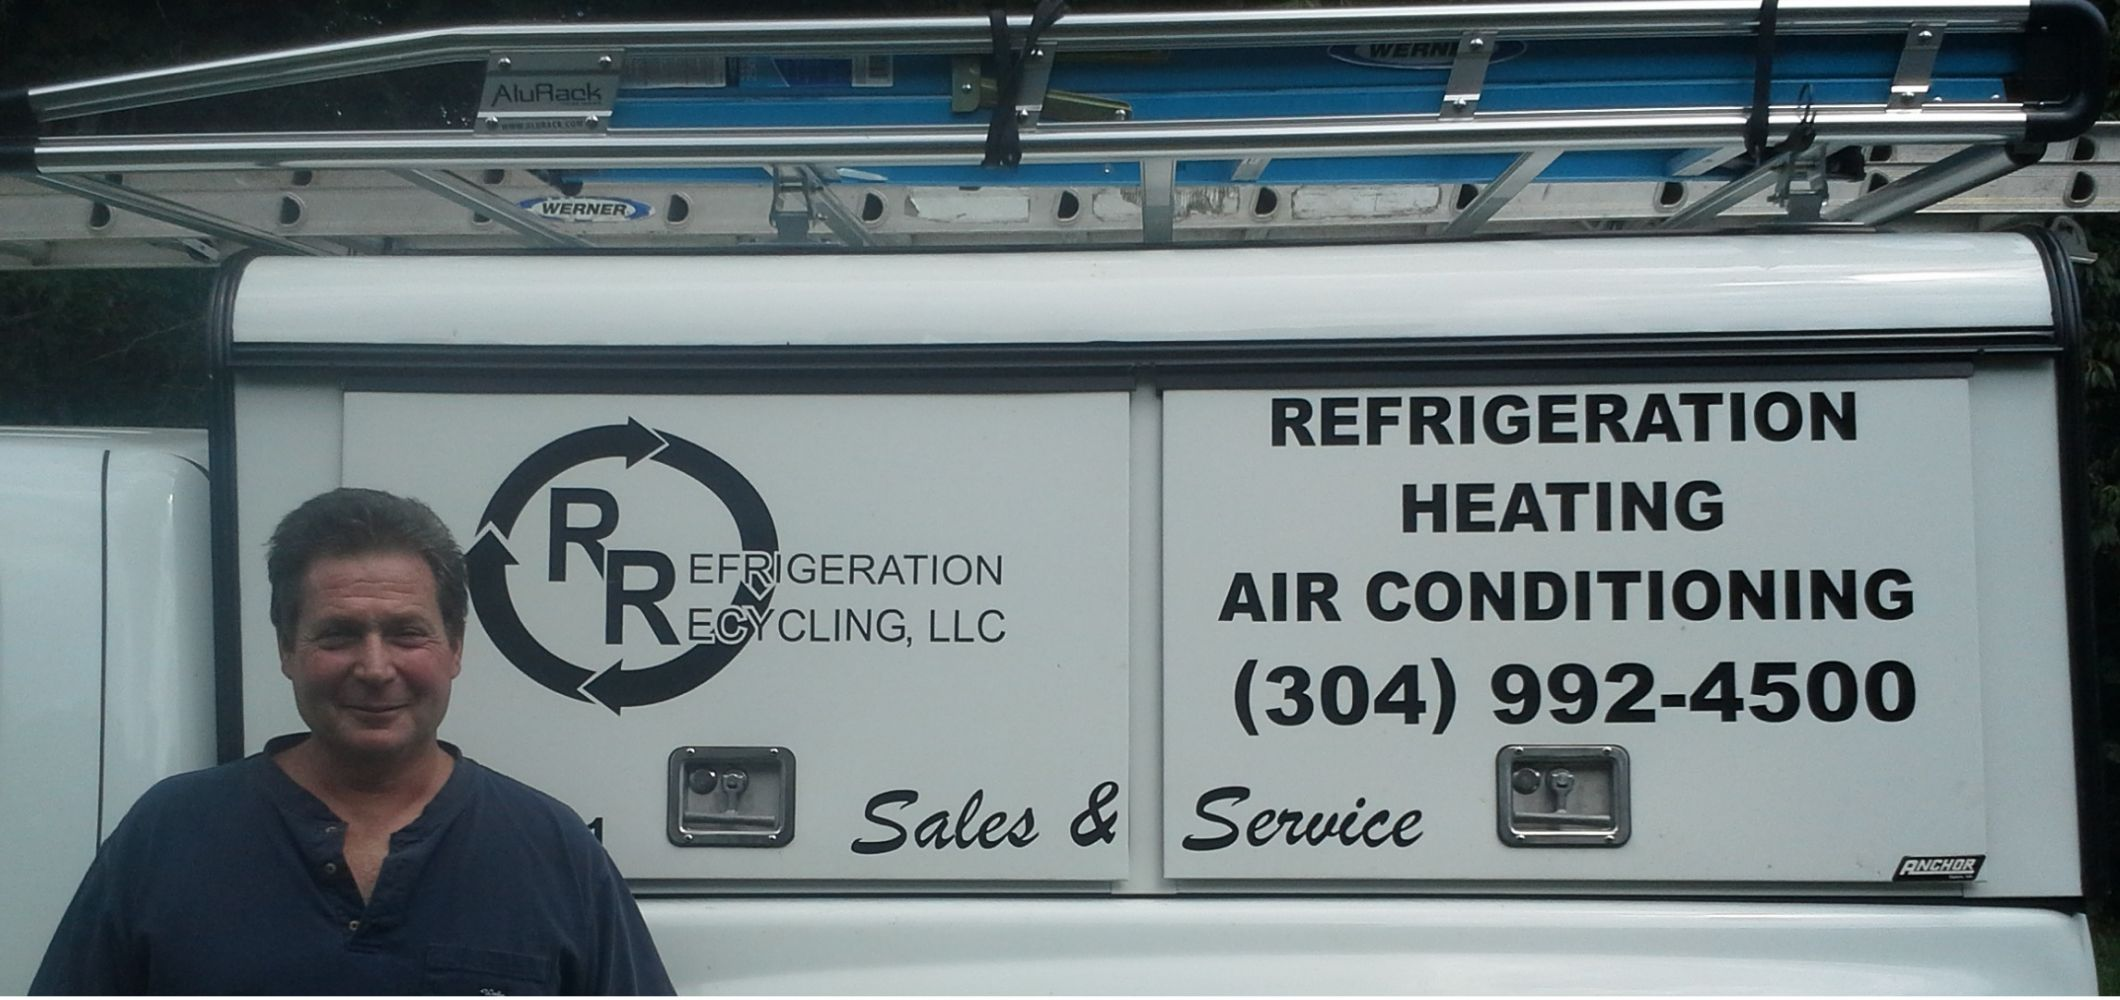 Owner of Refrigeration Recyclong, LLC in front of a service van